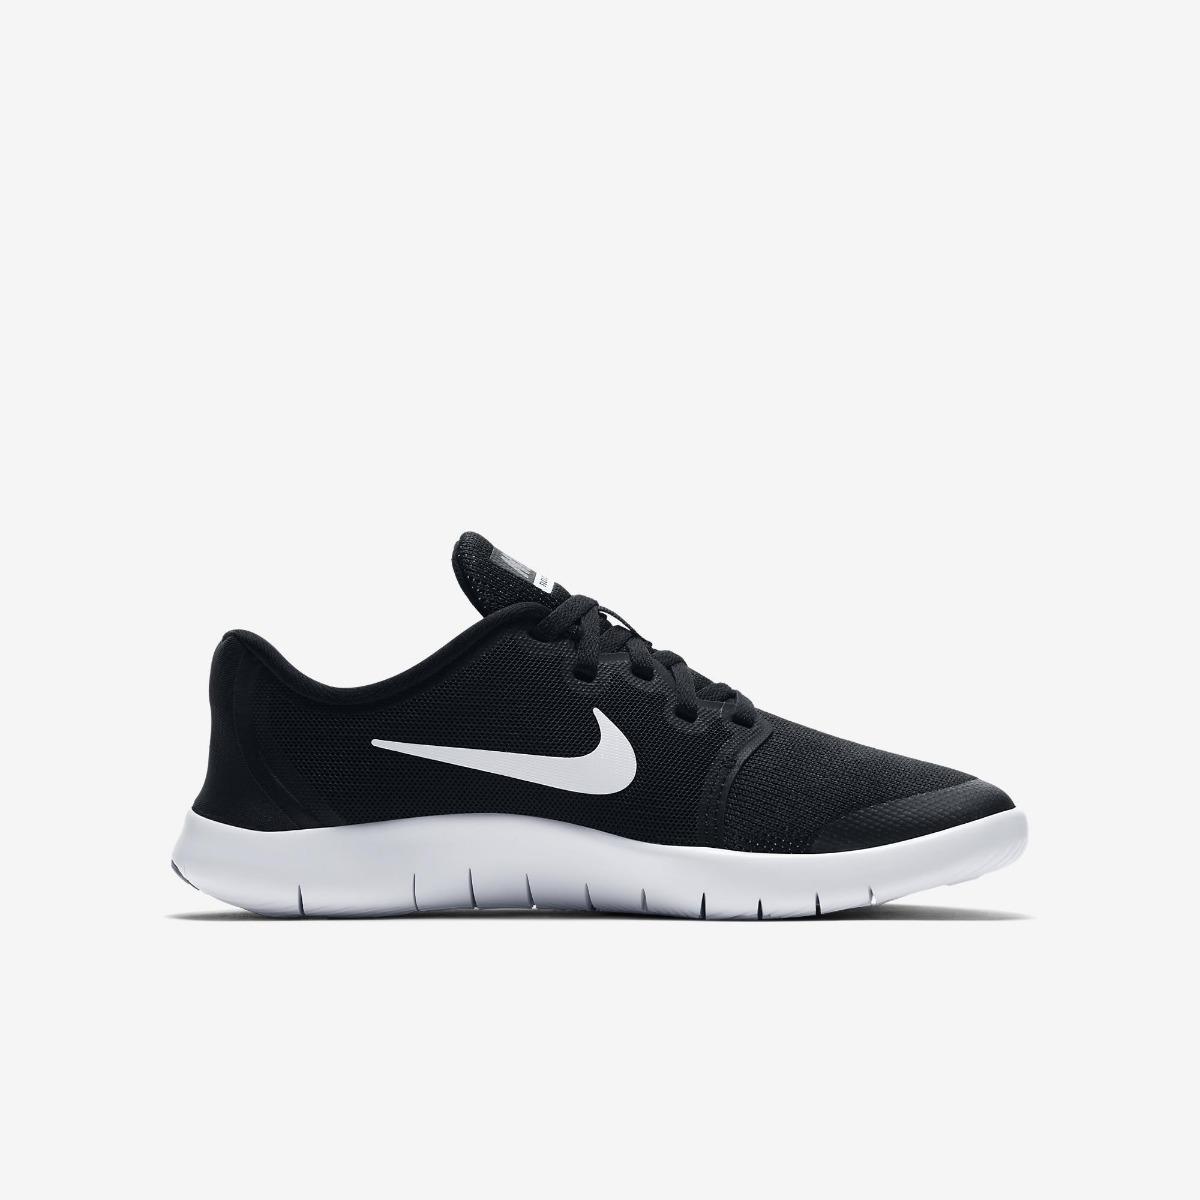 Tenis Nike Flex Contact 2 Gs Feminino Pretobranco Origin